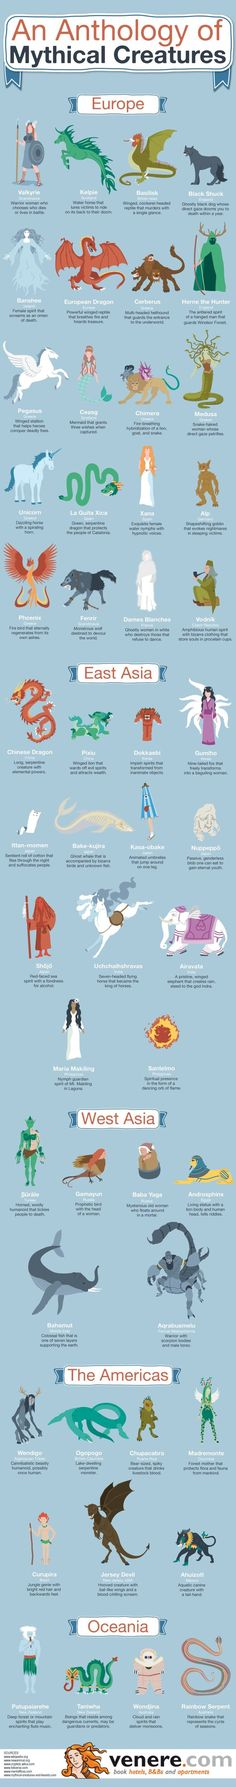 Writing Fantasy ... Infographic Showing Mythical Creatures of the World. #writingfantasy #writingbiz www.OneMorePress.com